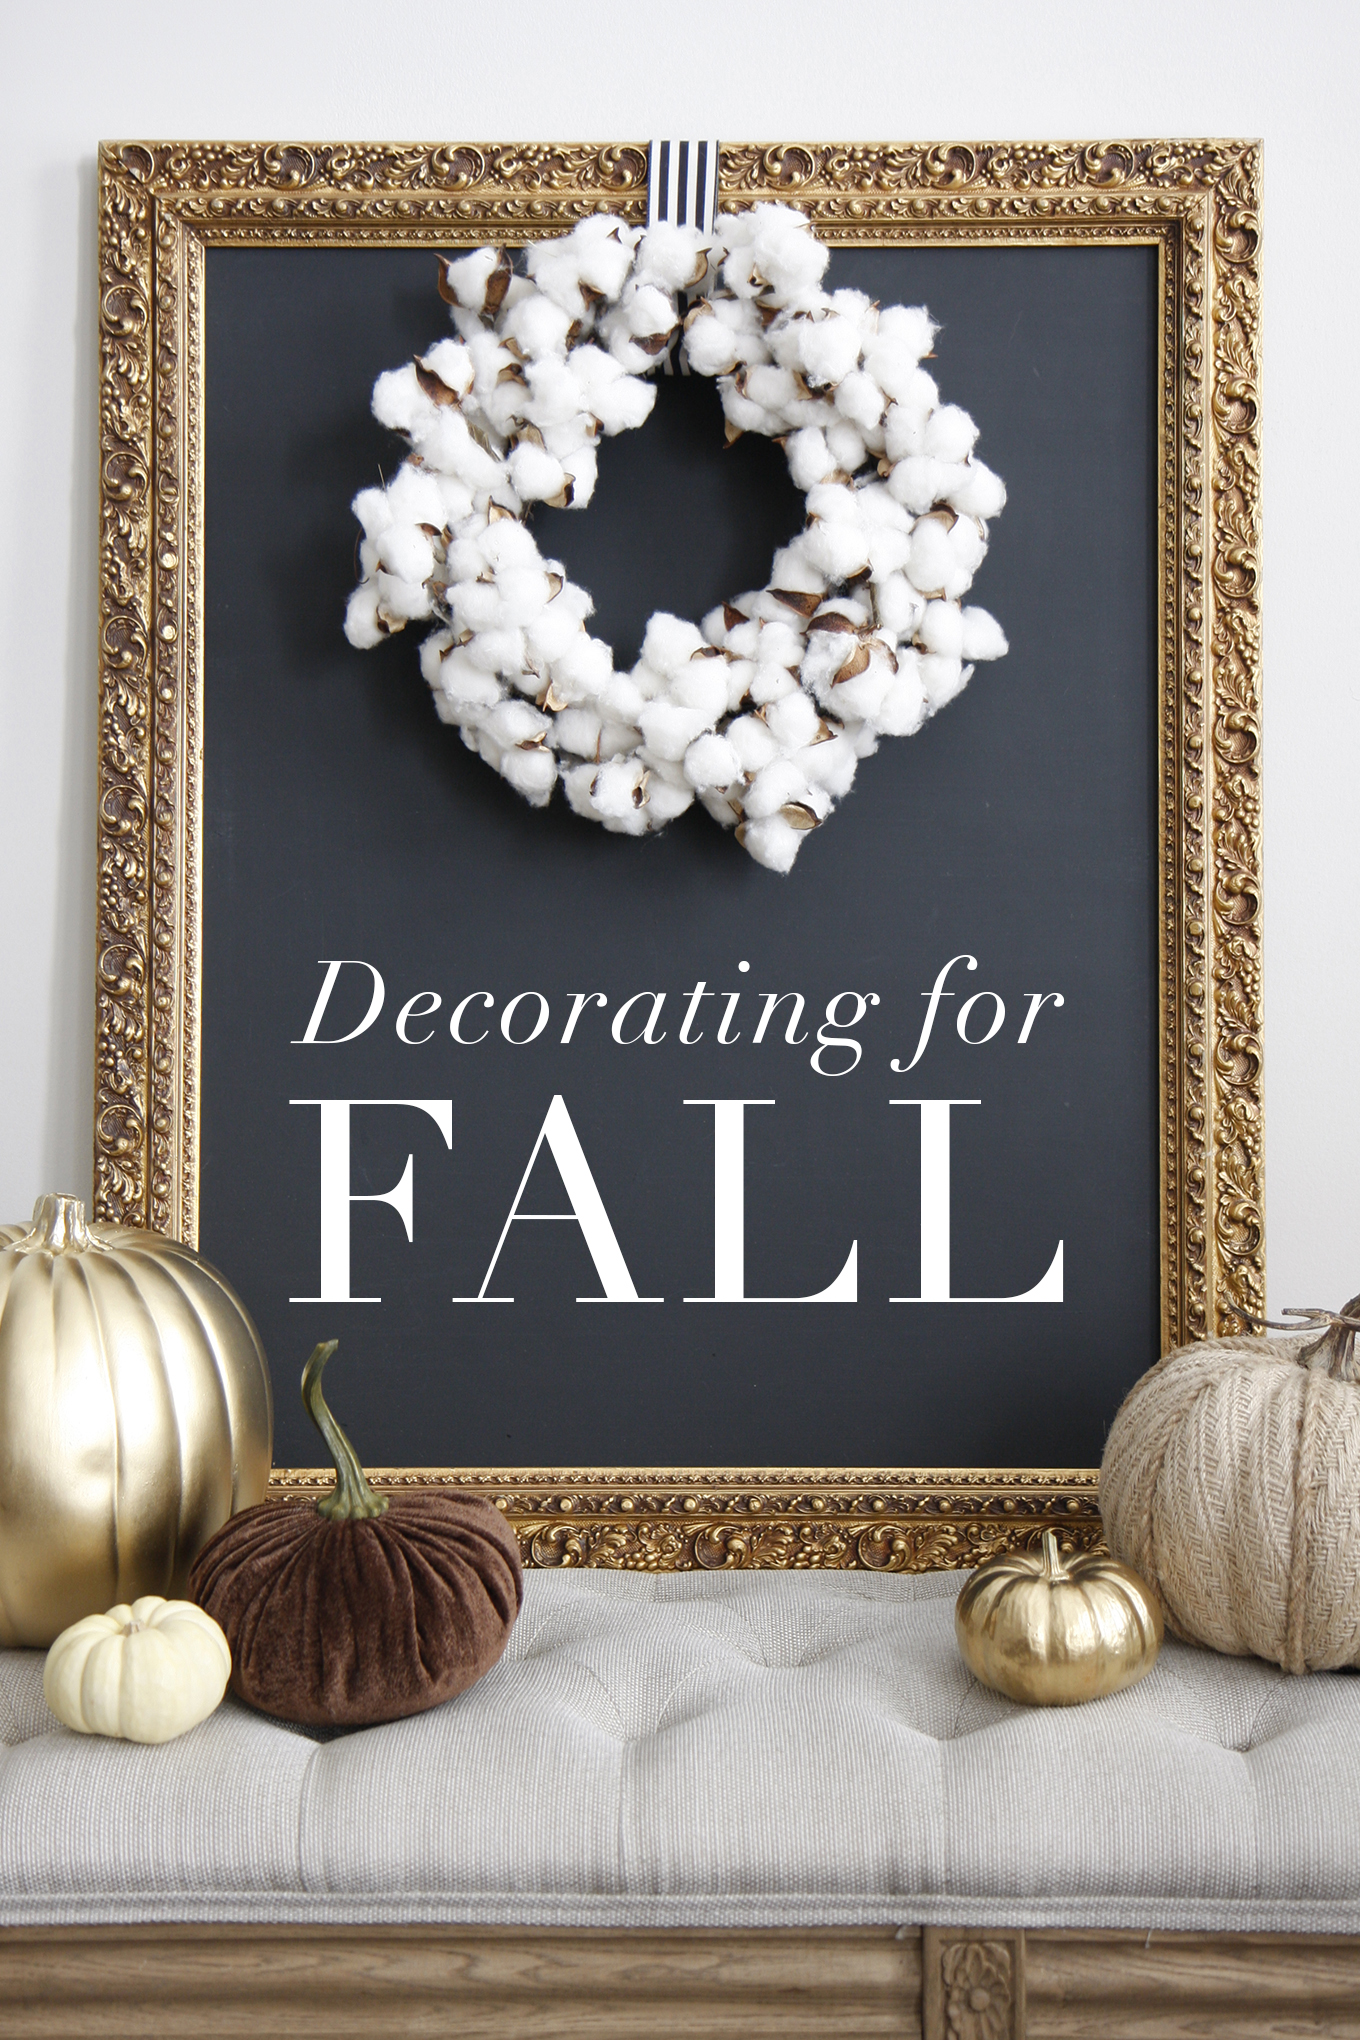 Decorating for Fall title